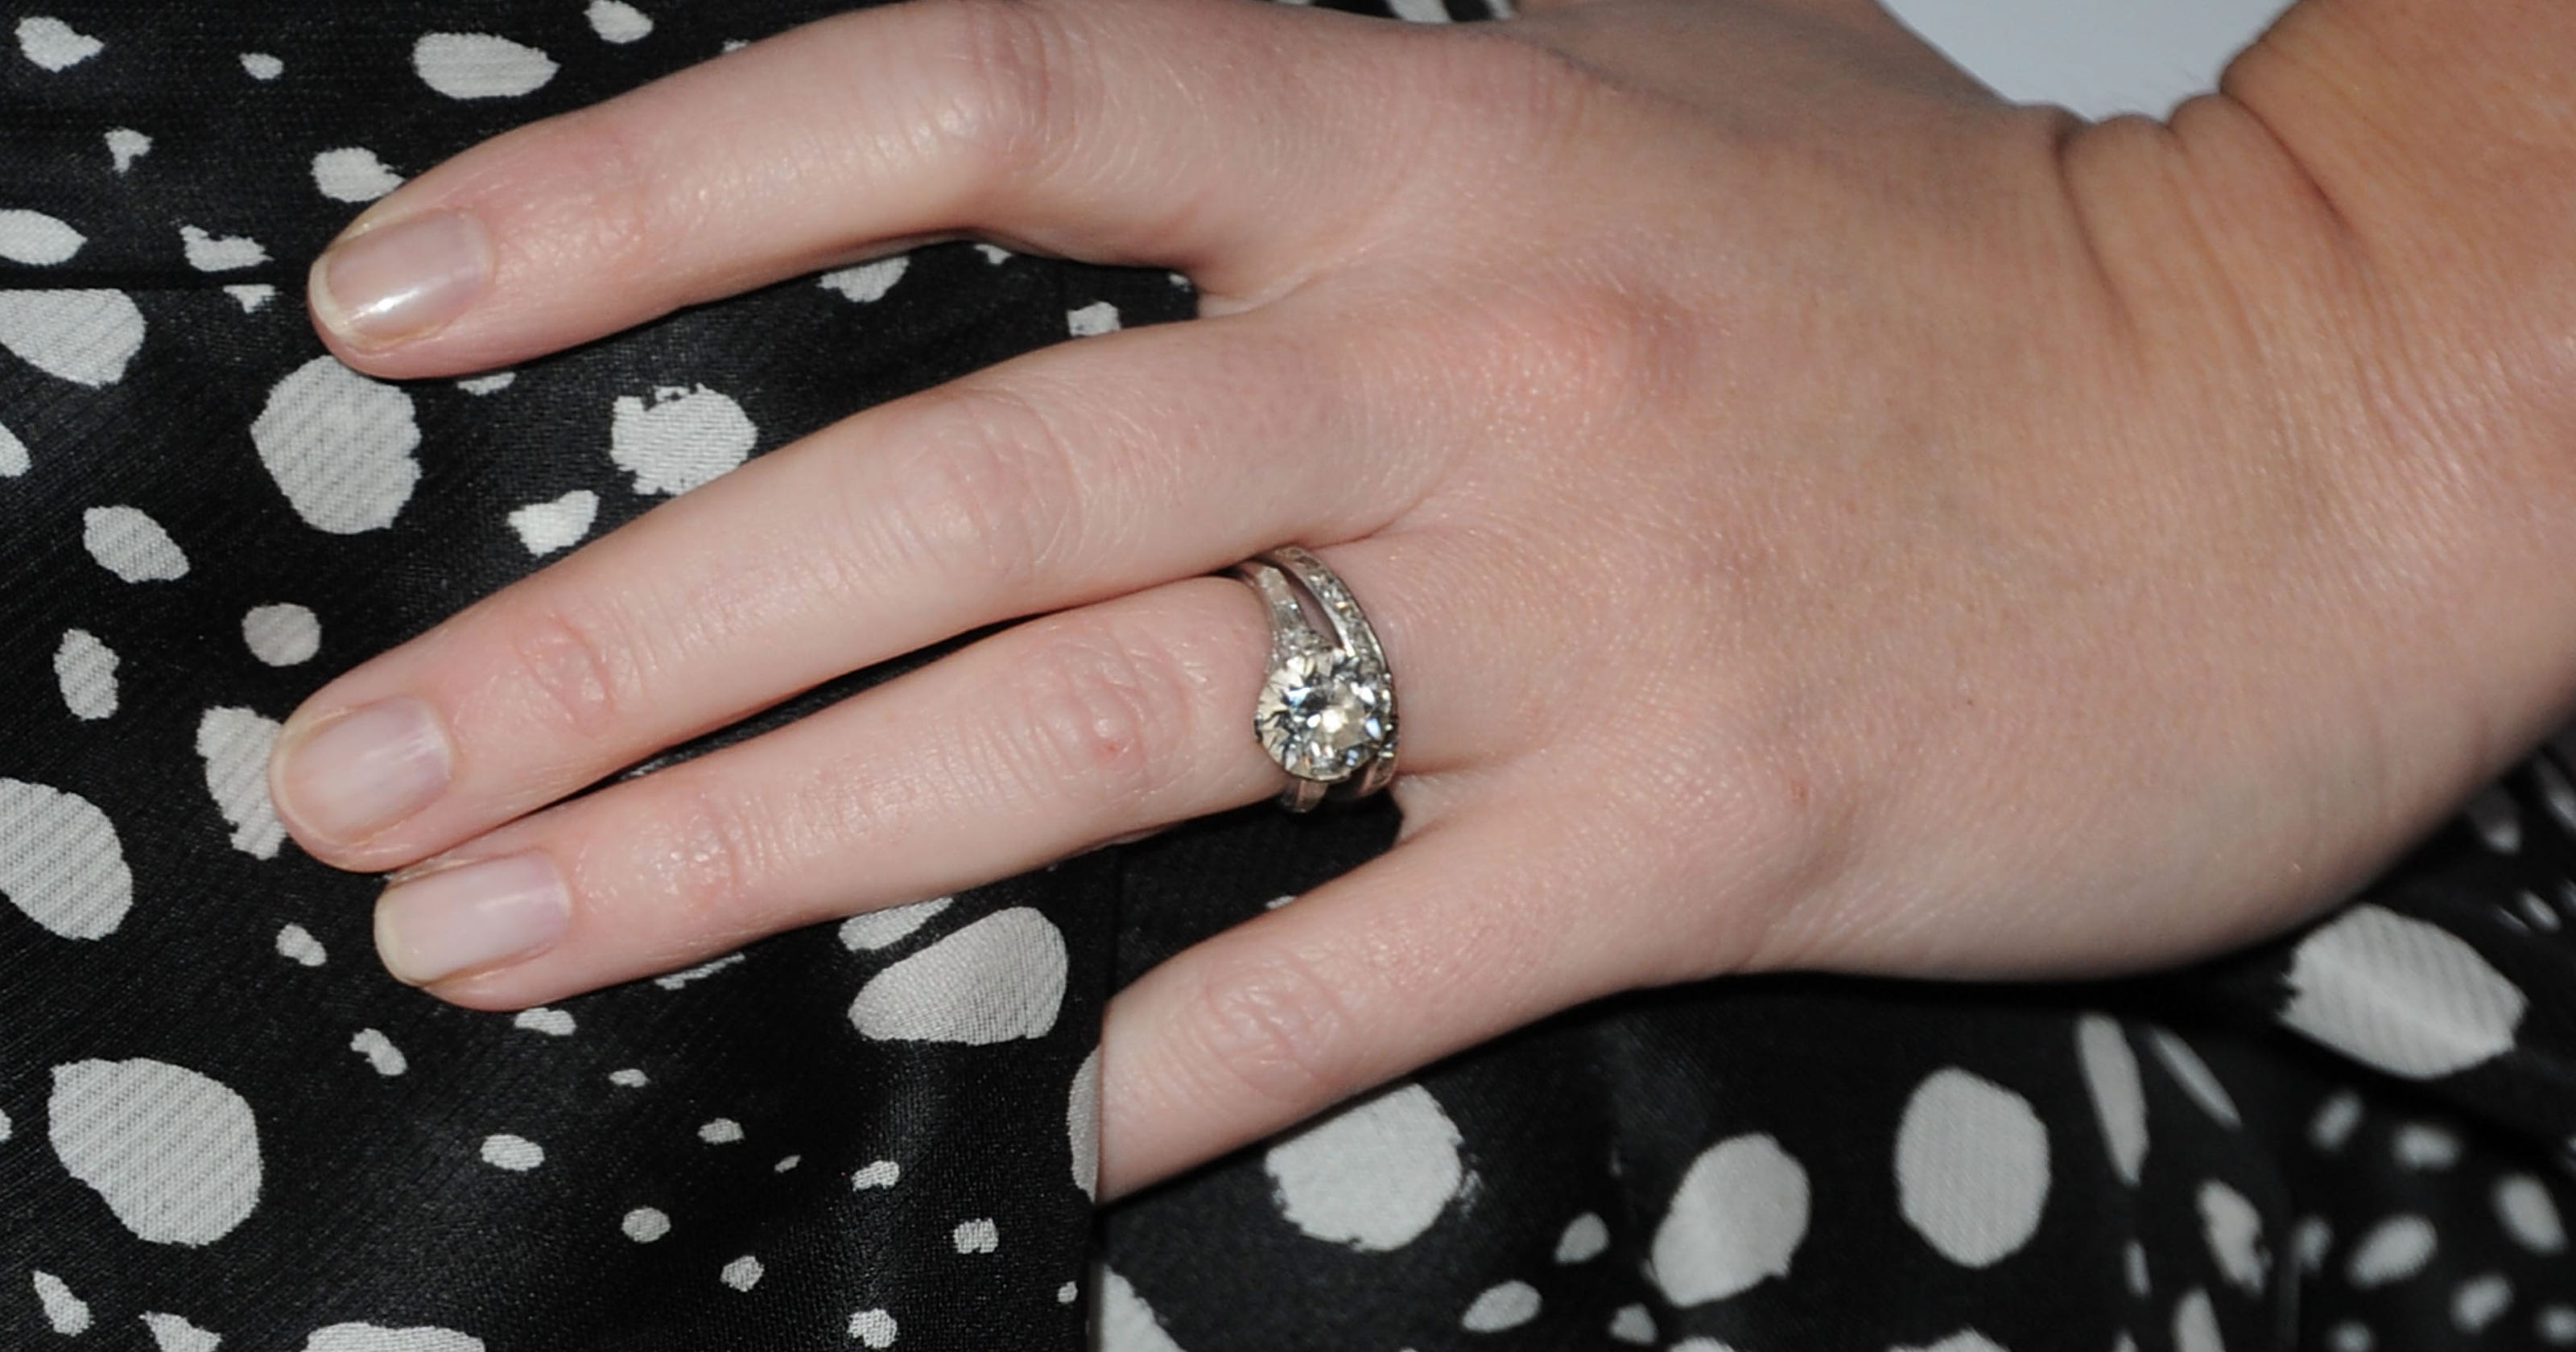 Engagement ring goes on the outside, mom-in-law